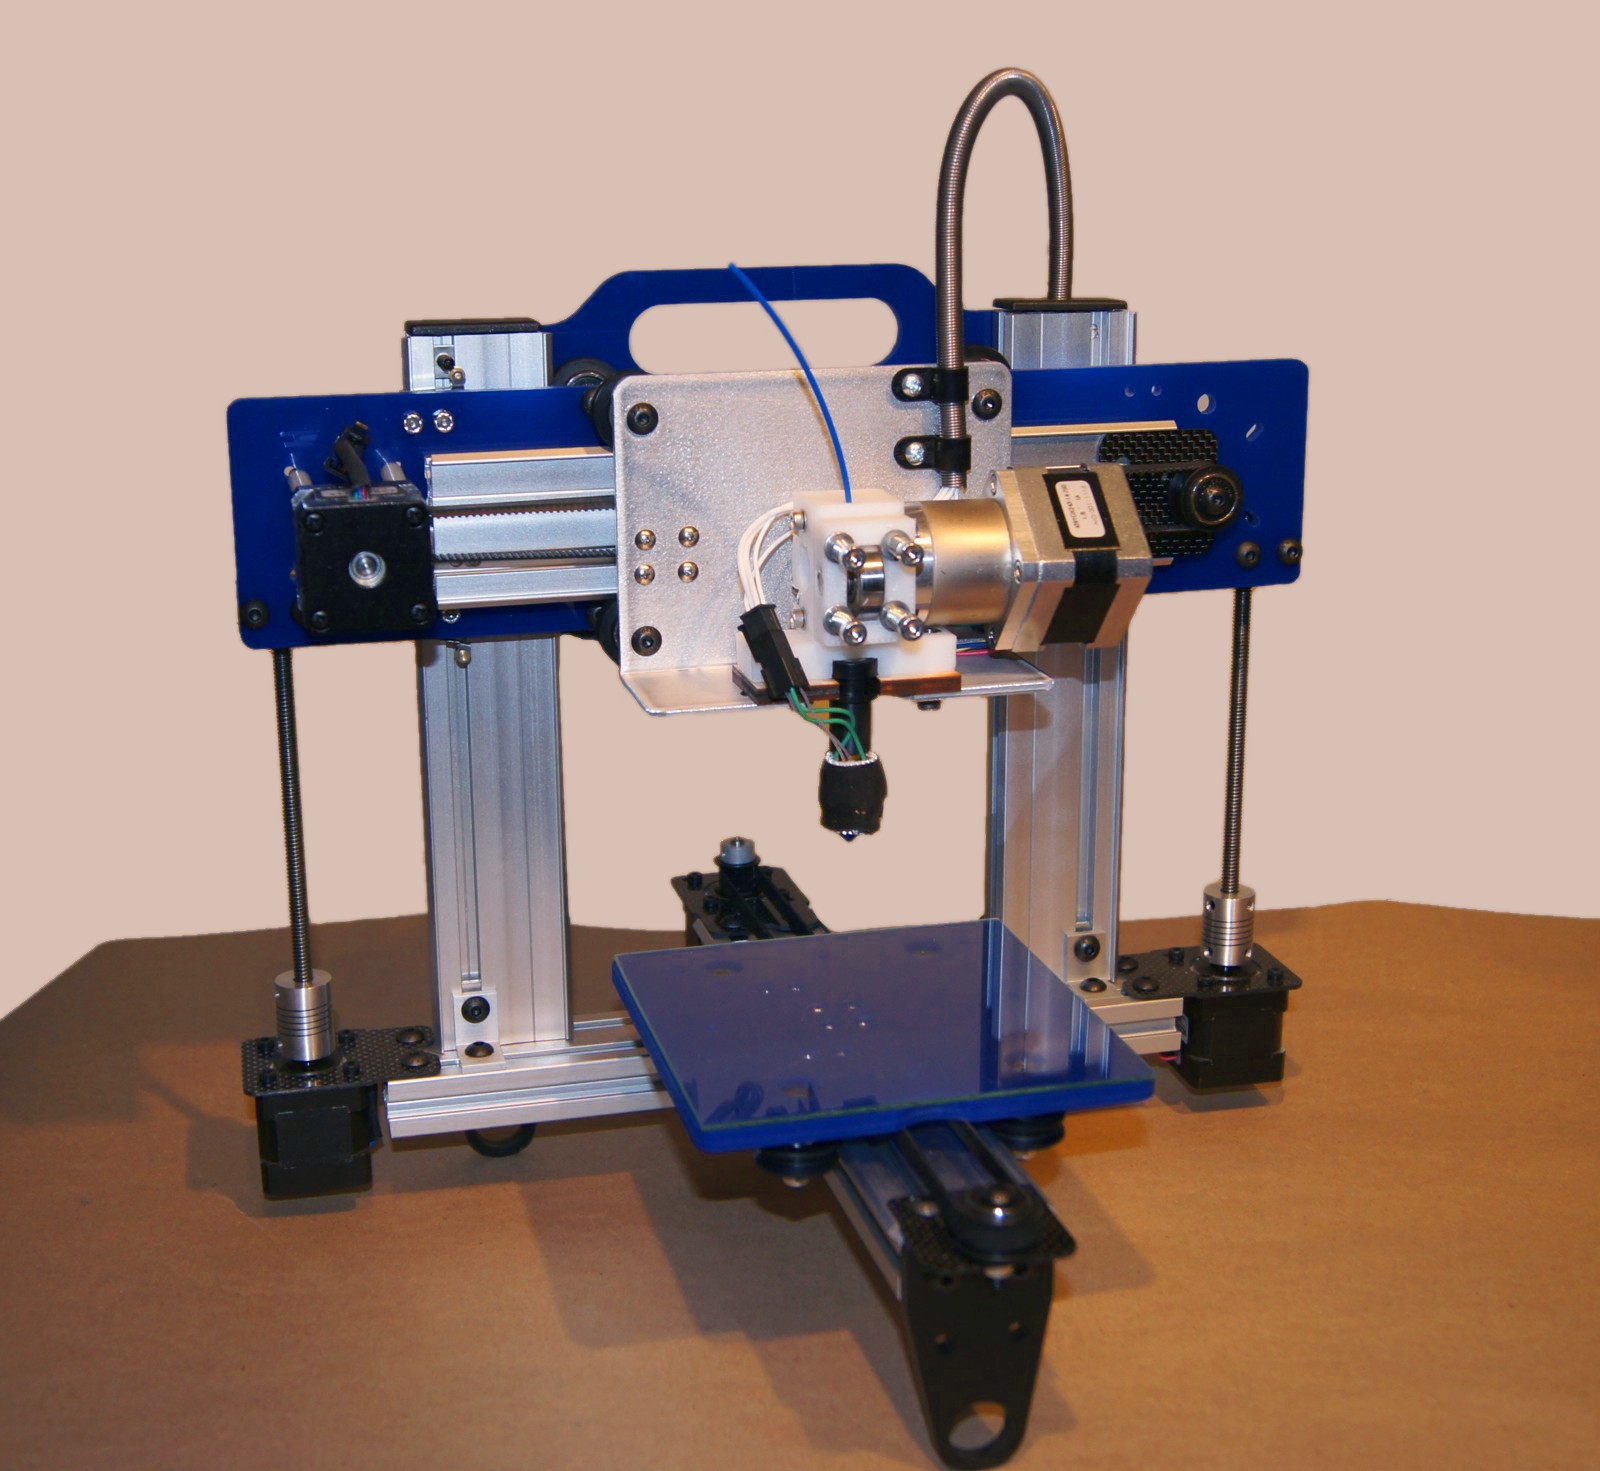 An ORDbot Quantum 3D printer